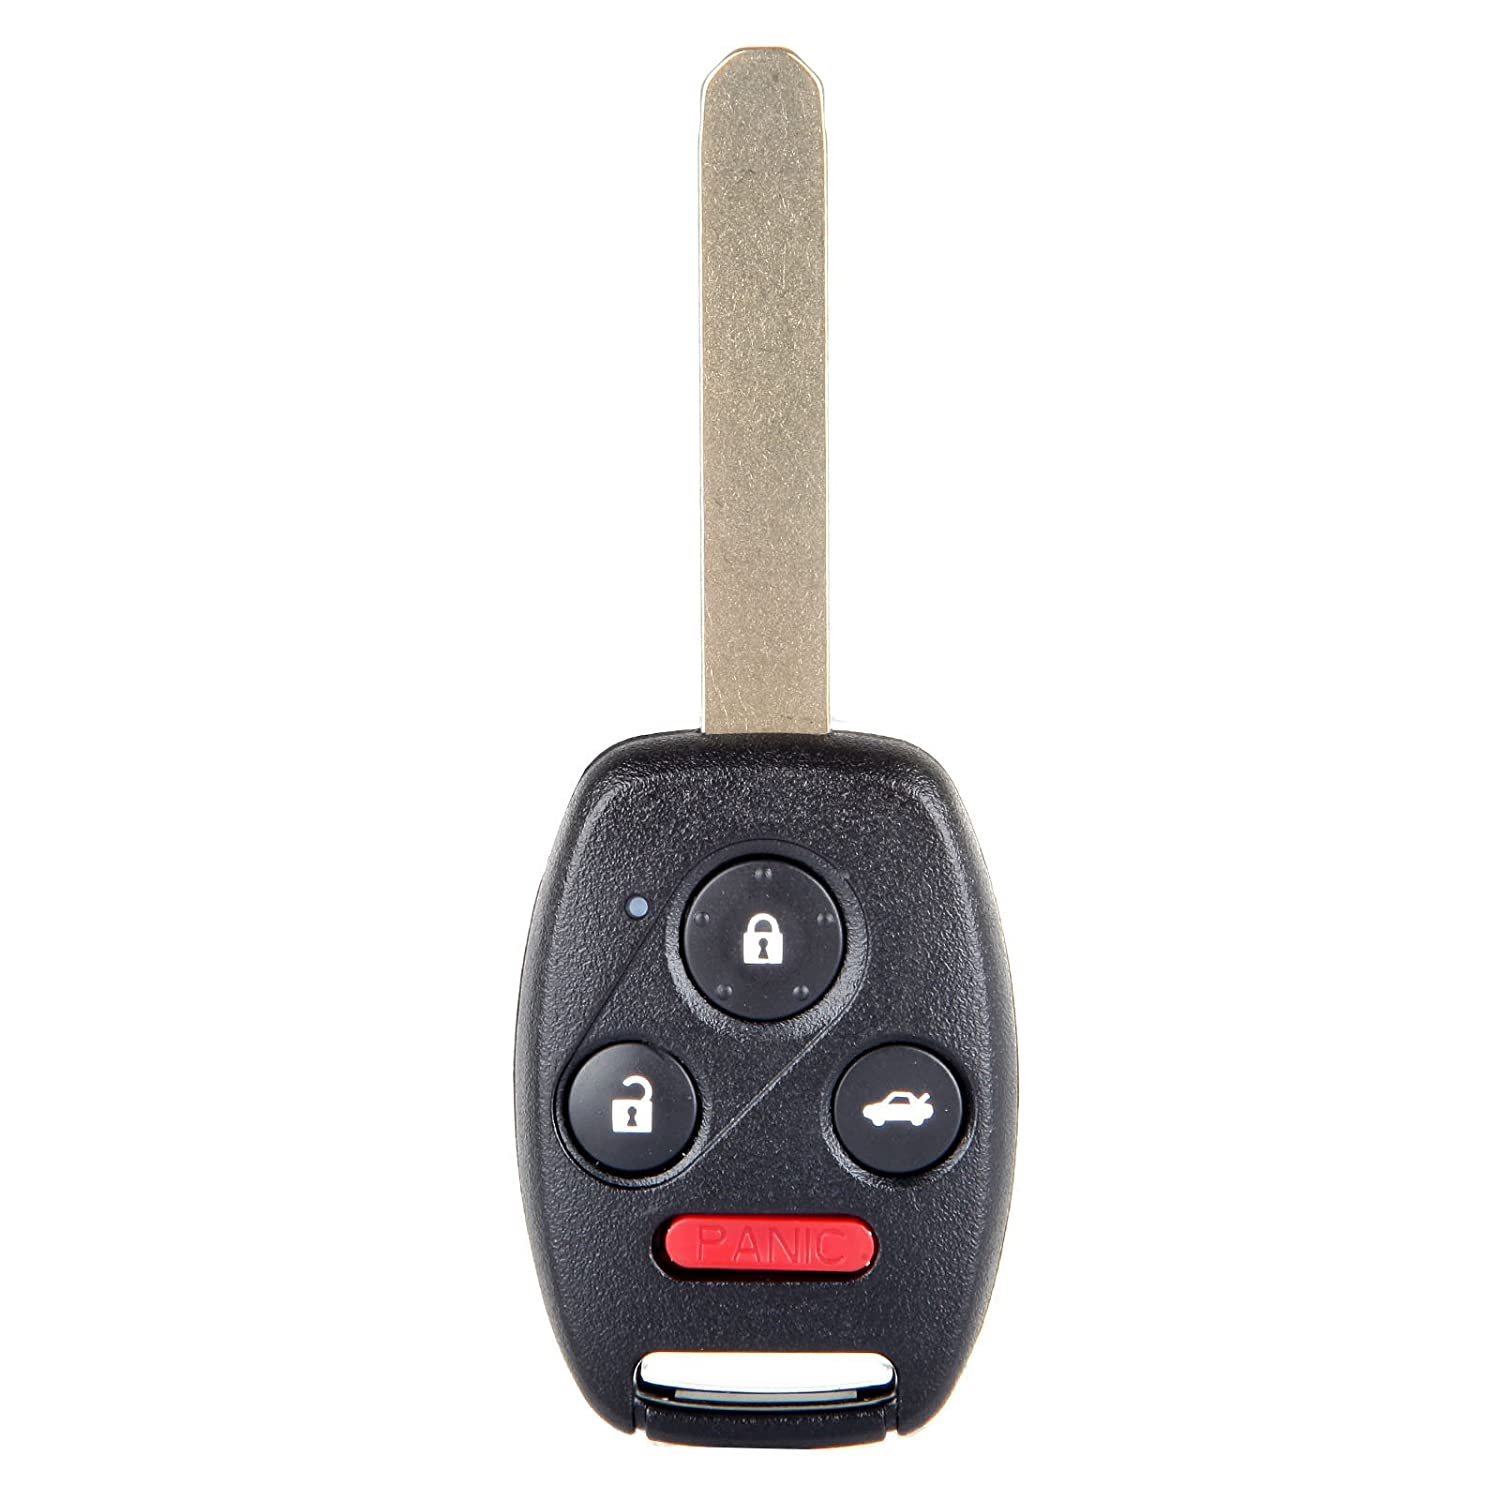 ECCPP Replacement fit for Uncut 313.8MHz Keyless Entry Remote Car Key Fob Transmitter Honda Civic 06-2013 N5F-S0084A Pack of 1 057205-5211-1534408711